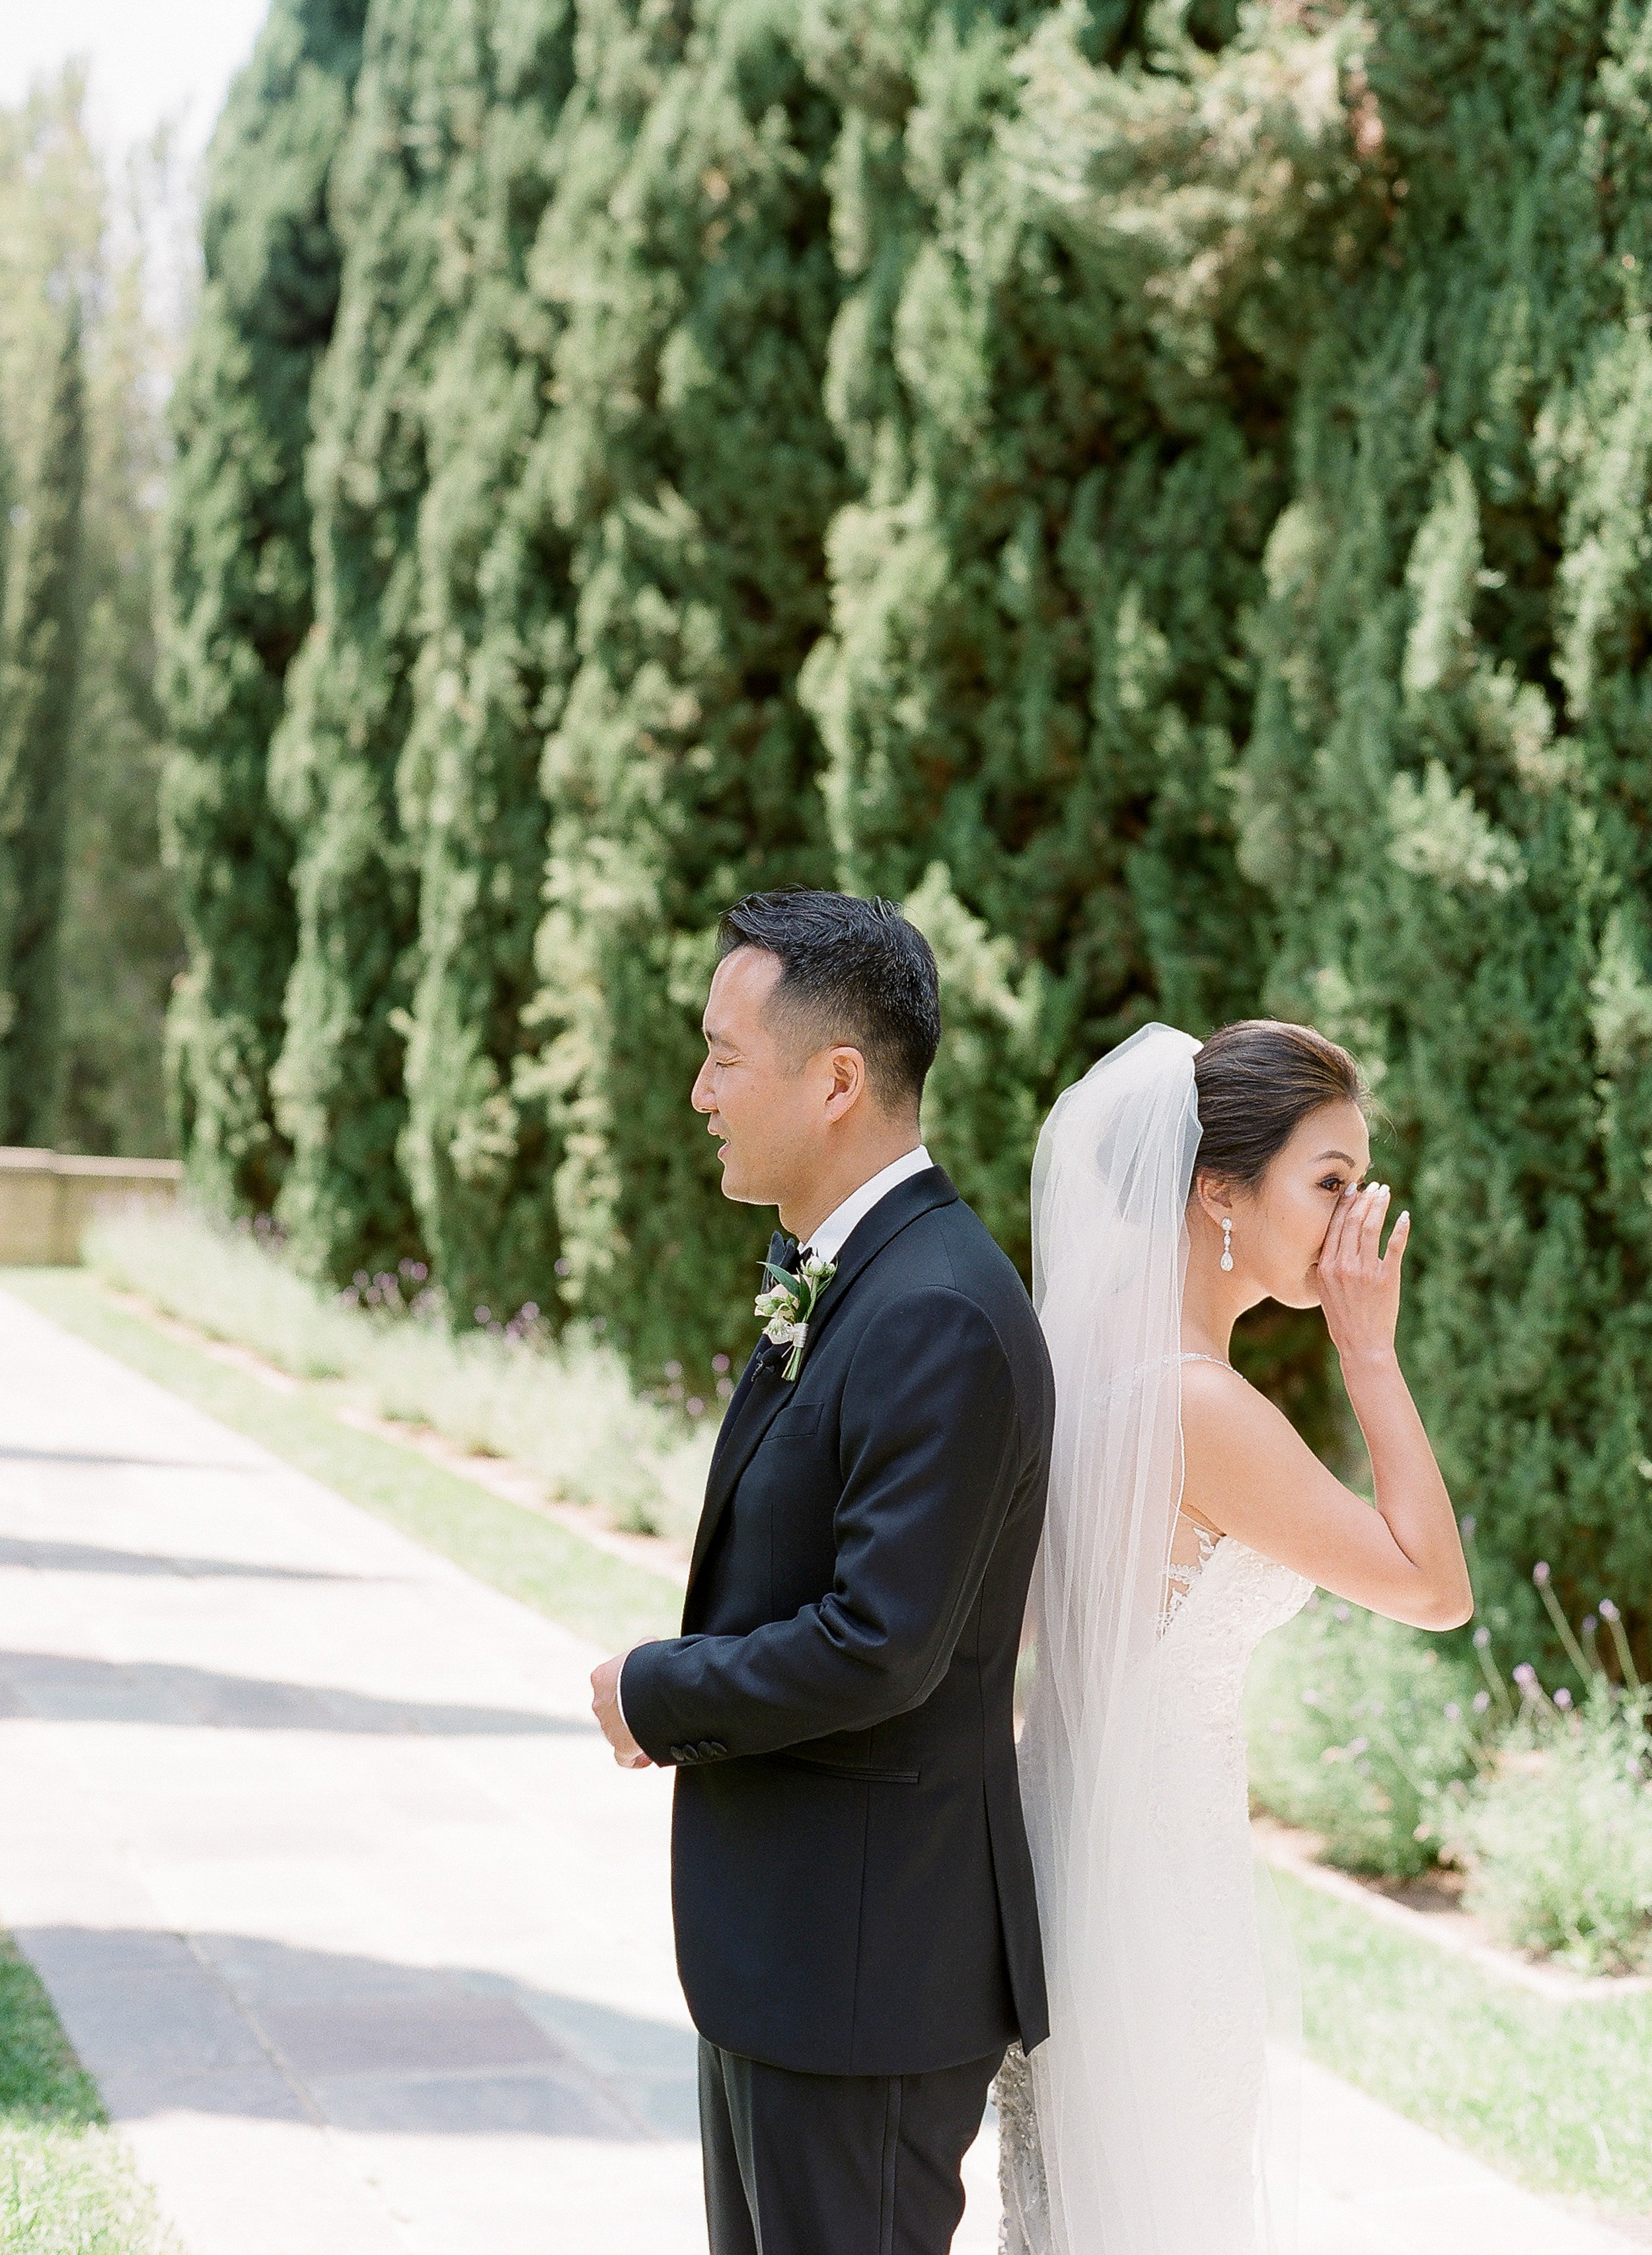 Greystone-Mansion-Wedding-Kristina-Adams-112.jpg